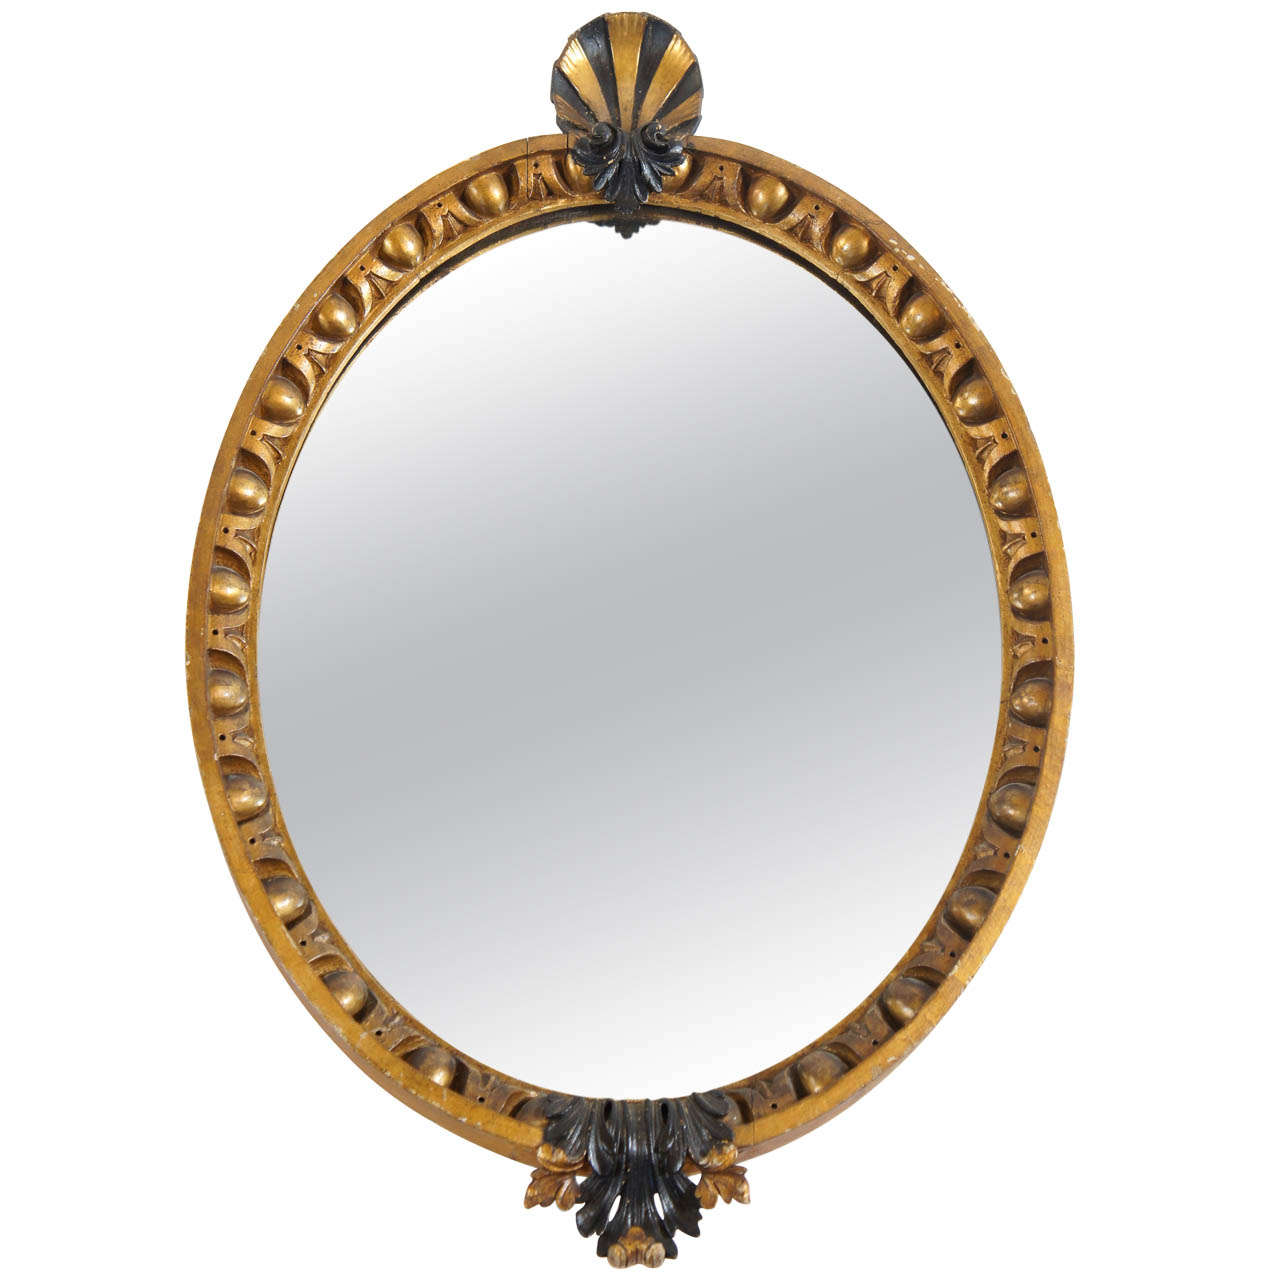 exceptional looking glass mirror Part - 5: exceptional looking glass mirror photo gallery